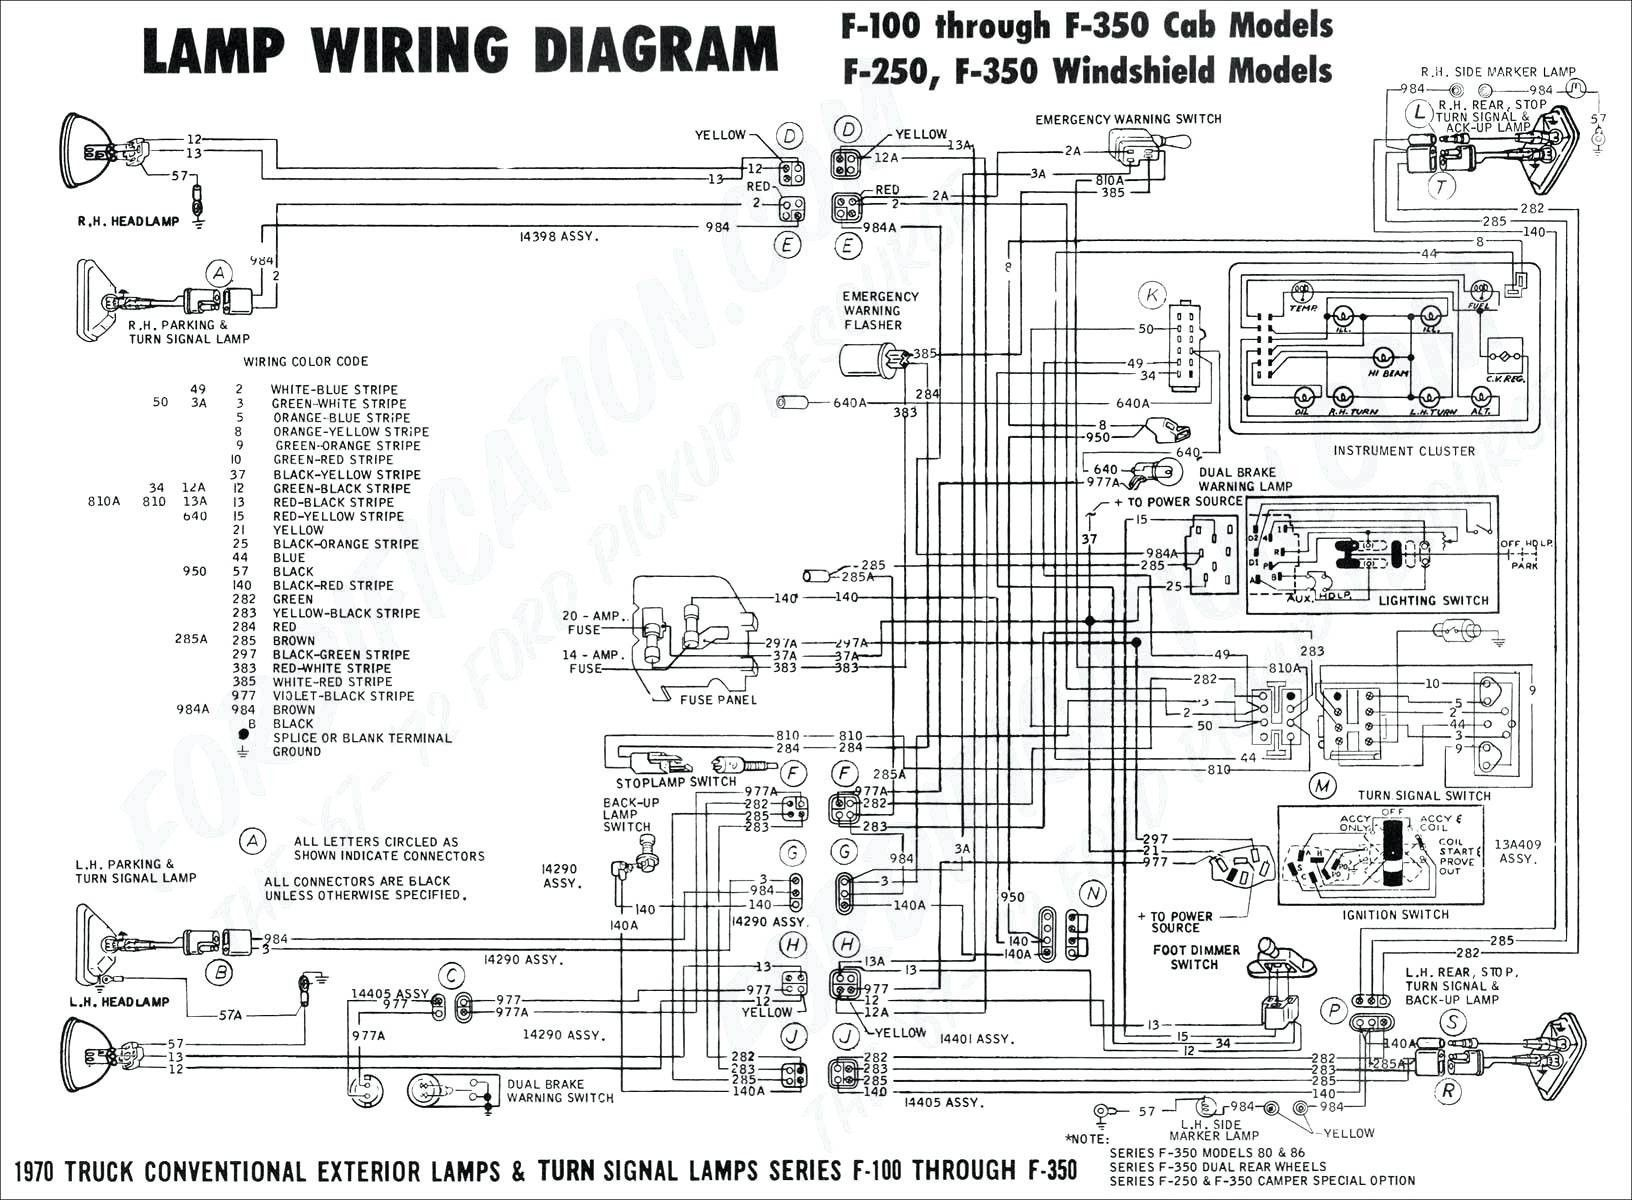 1972 Chevy Truck Wiring Diagram In 2020 Trailer Wiring Diagram Electrical Wiring Diagram Circuit Diagram